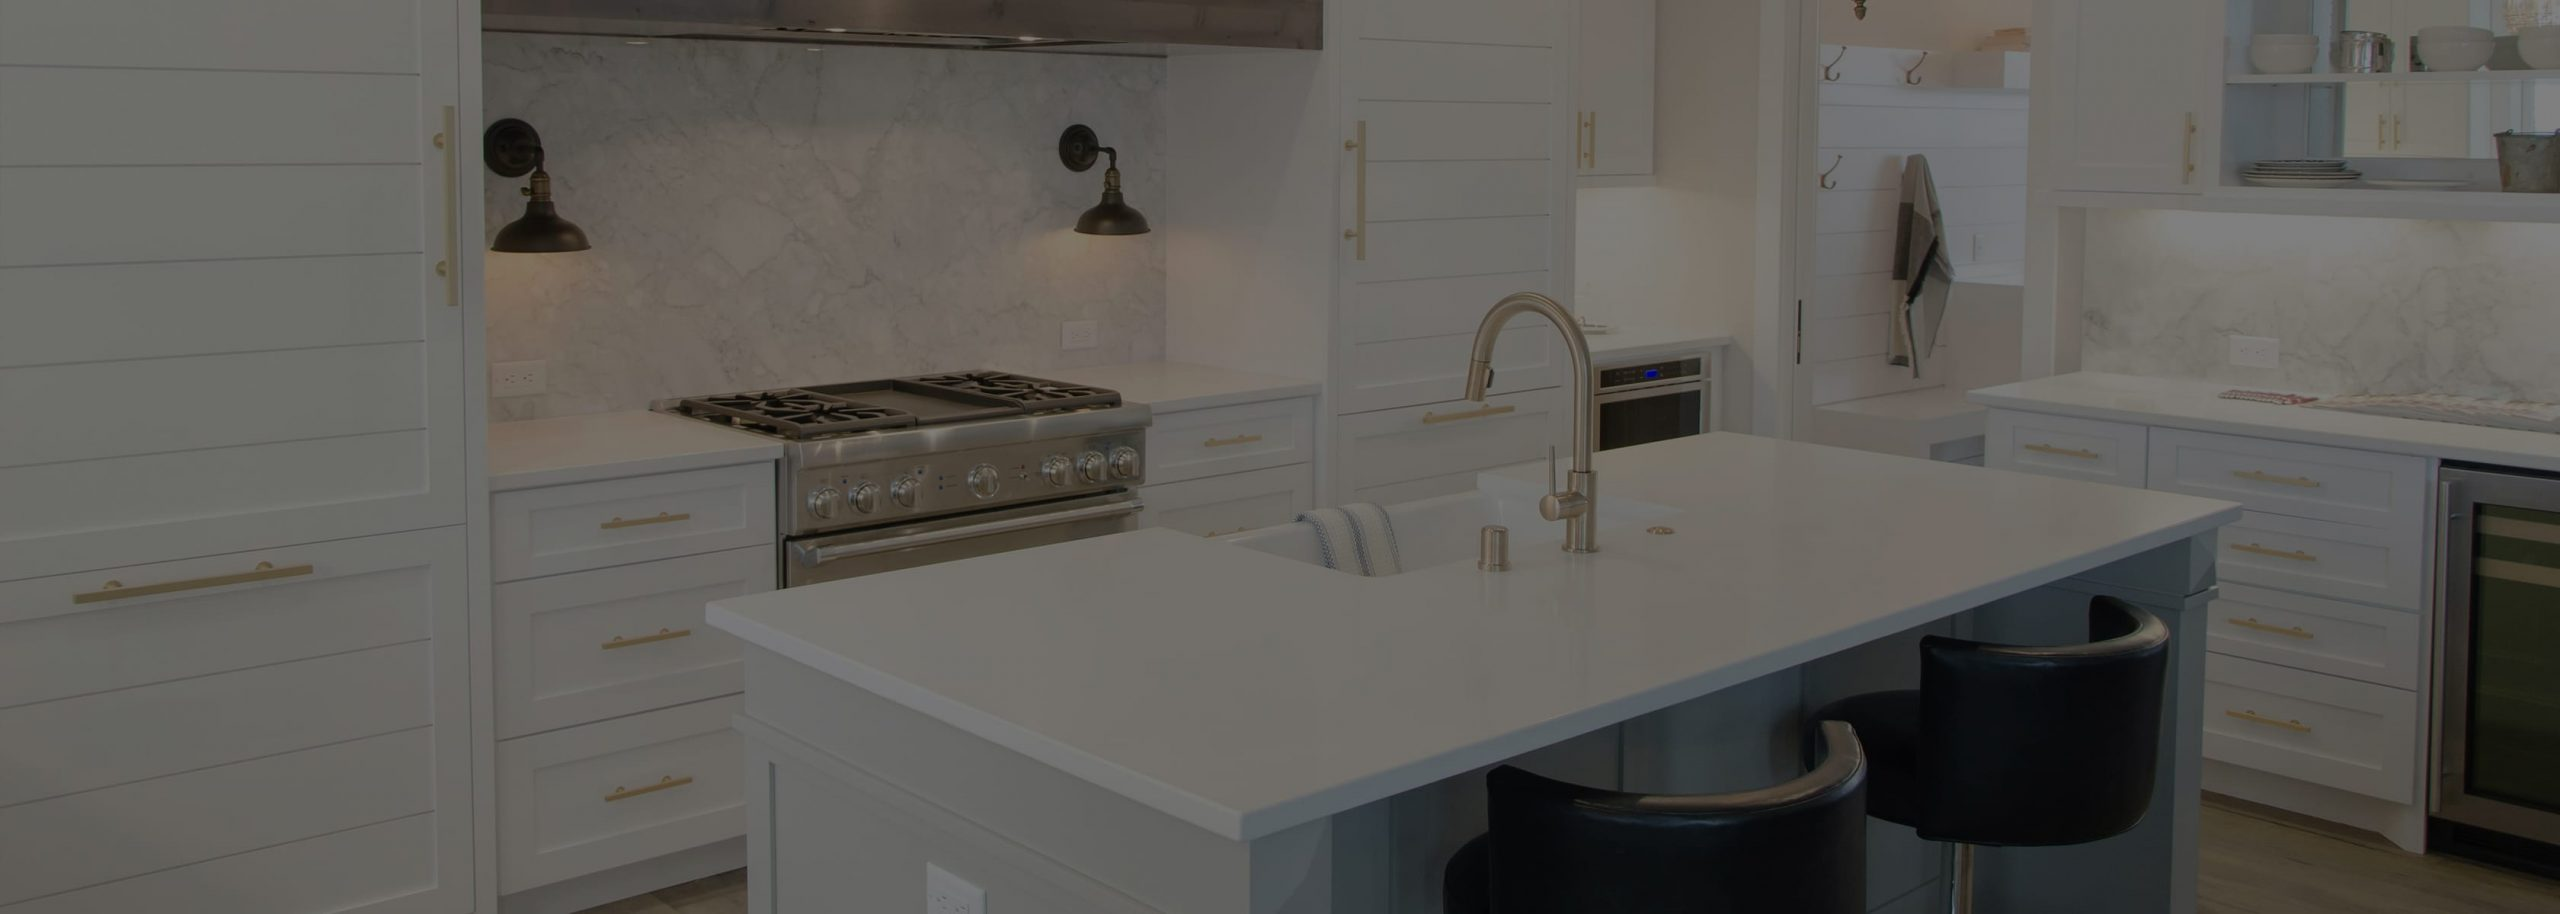 Kitchen Remodeling Leads header image